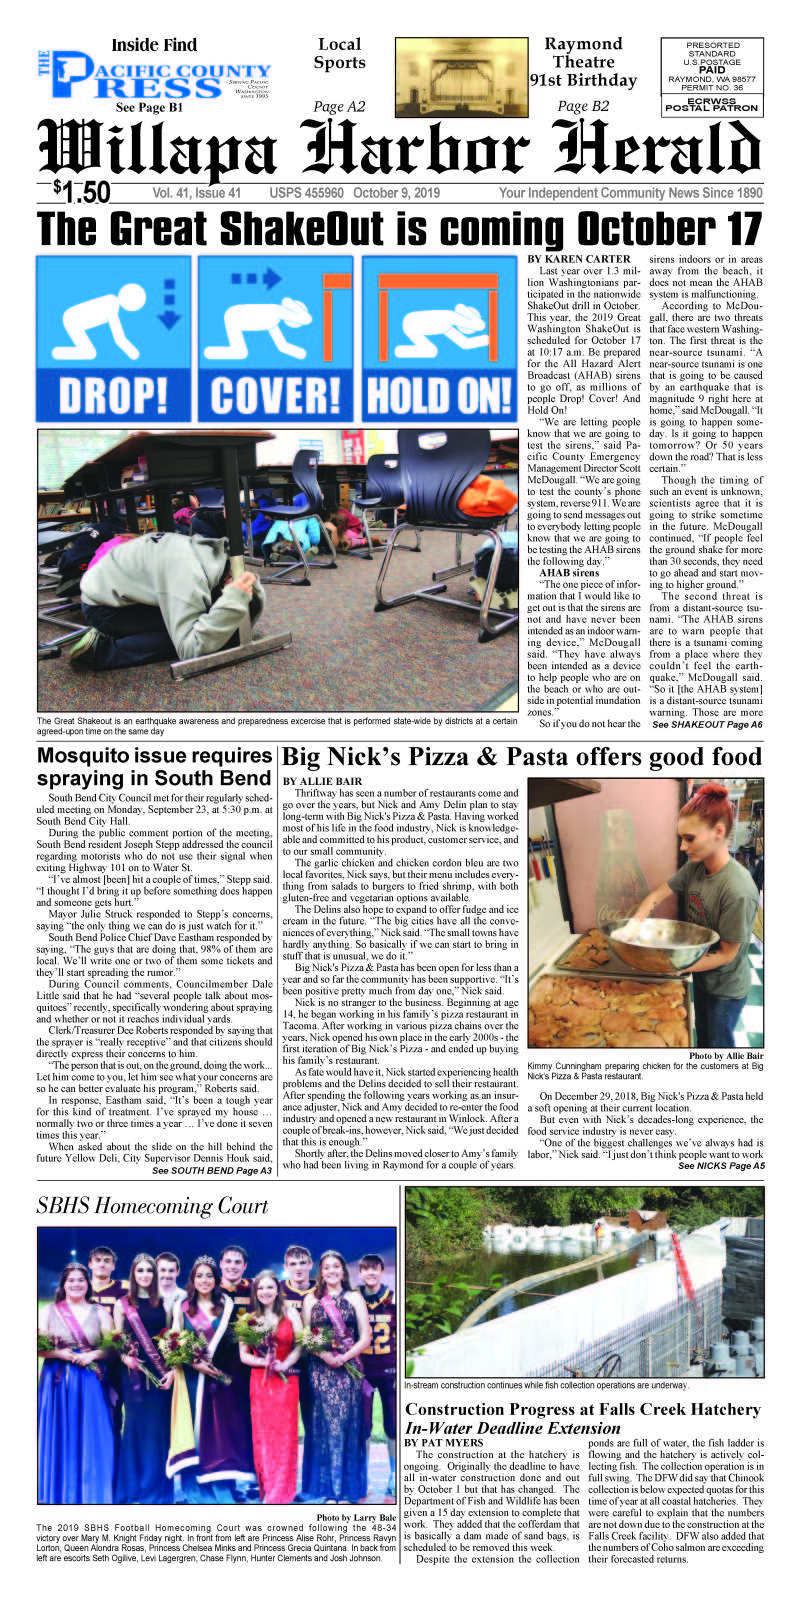 October 9, 2019 Willapa Harbor Herald and Pacific County Press